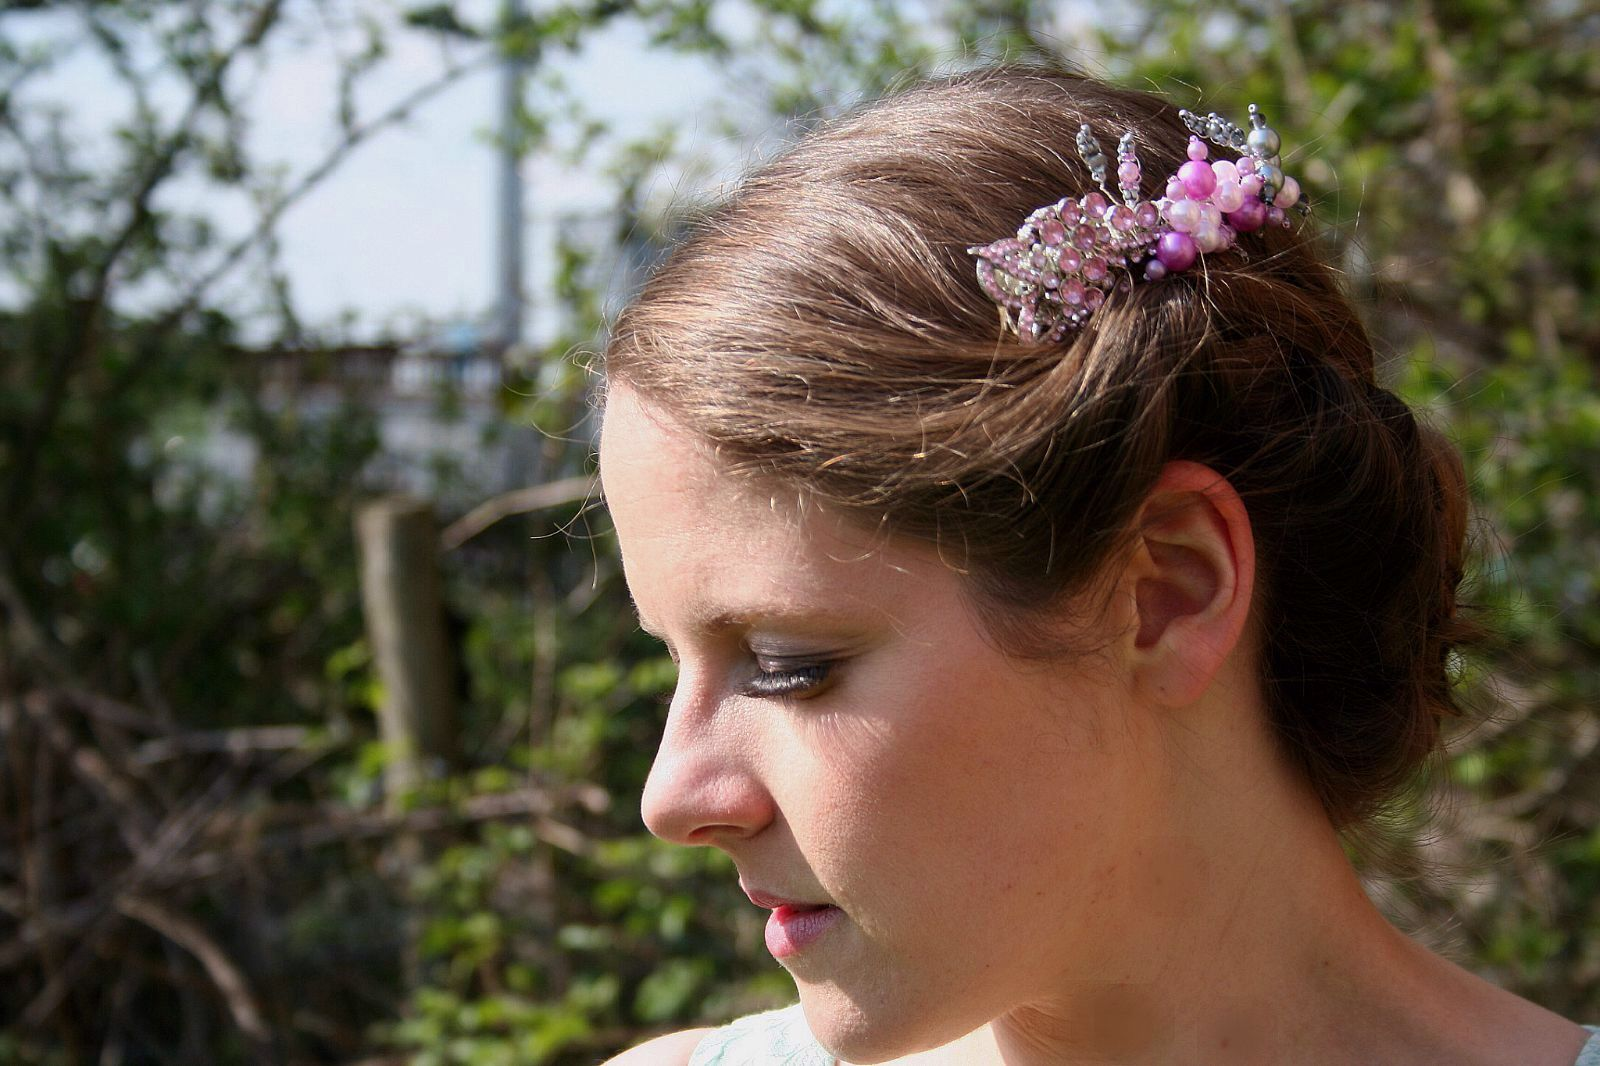 'Melissa' is an original design by Beatrice Bobbins. Created from vintage jewellery and pink pearls.